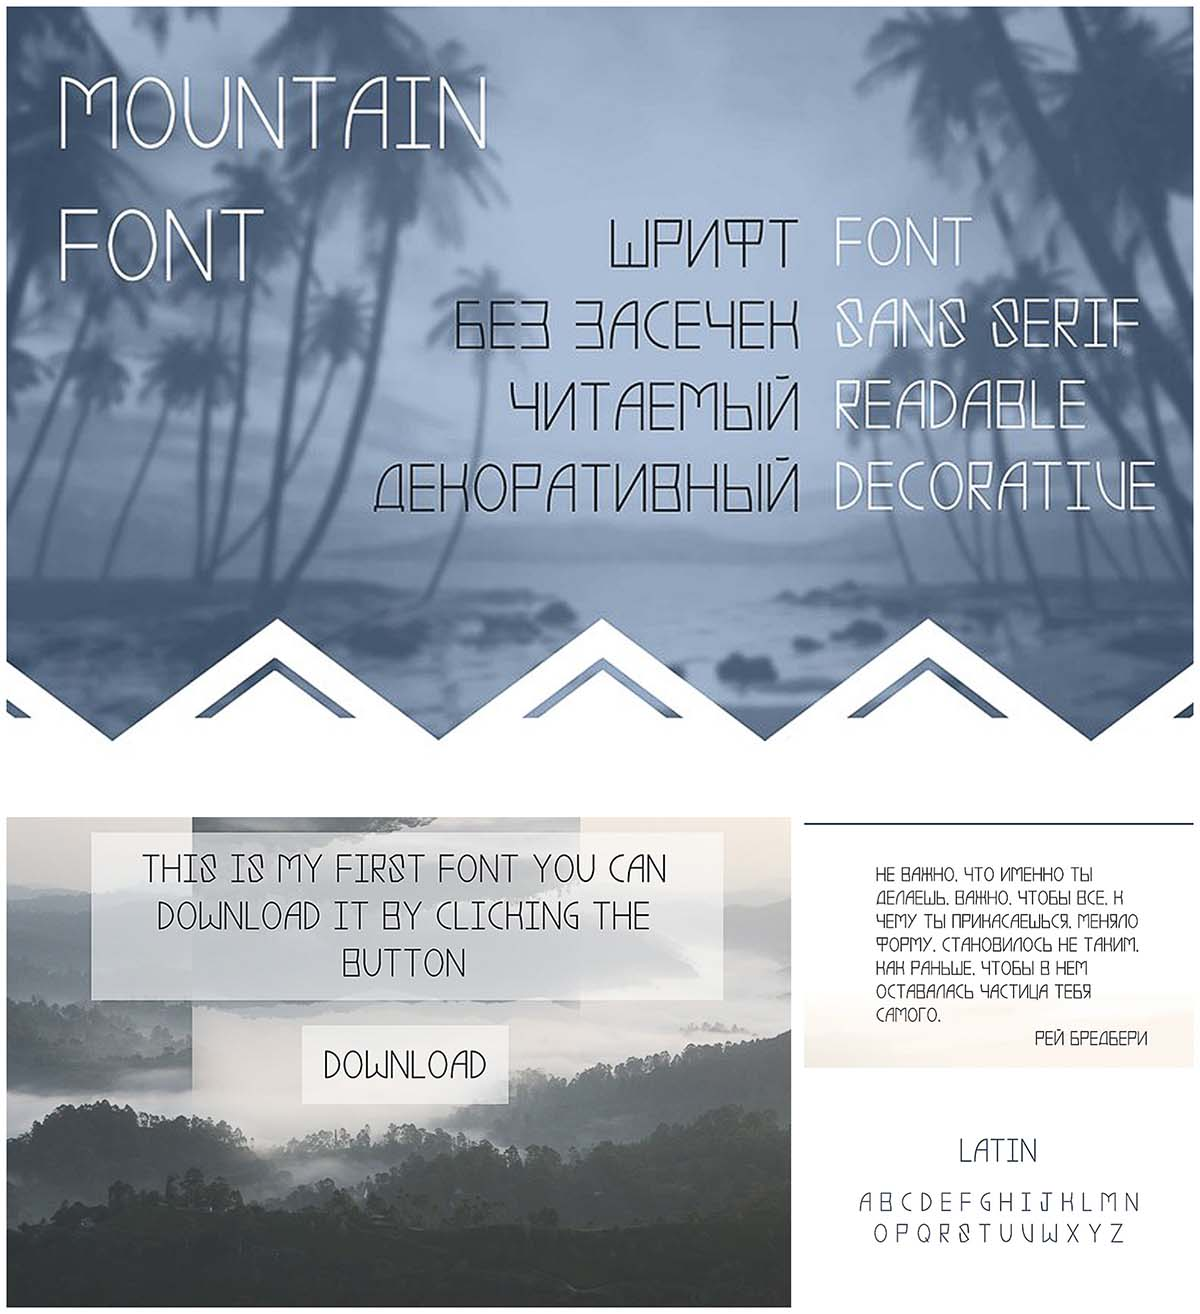 Mountain font with cyrillic typeface